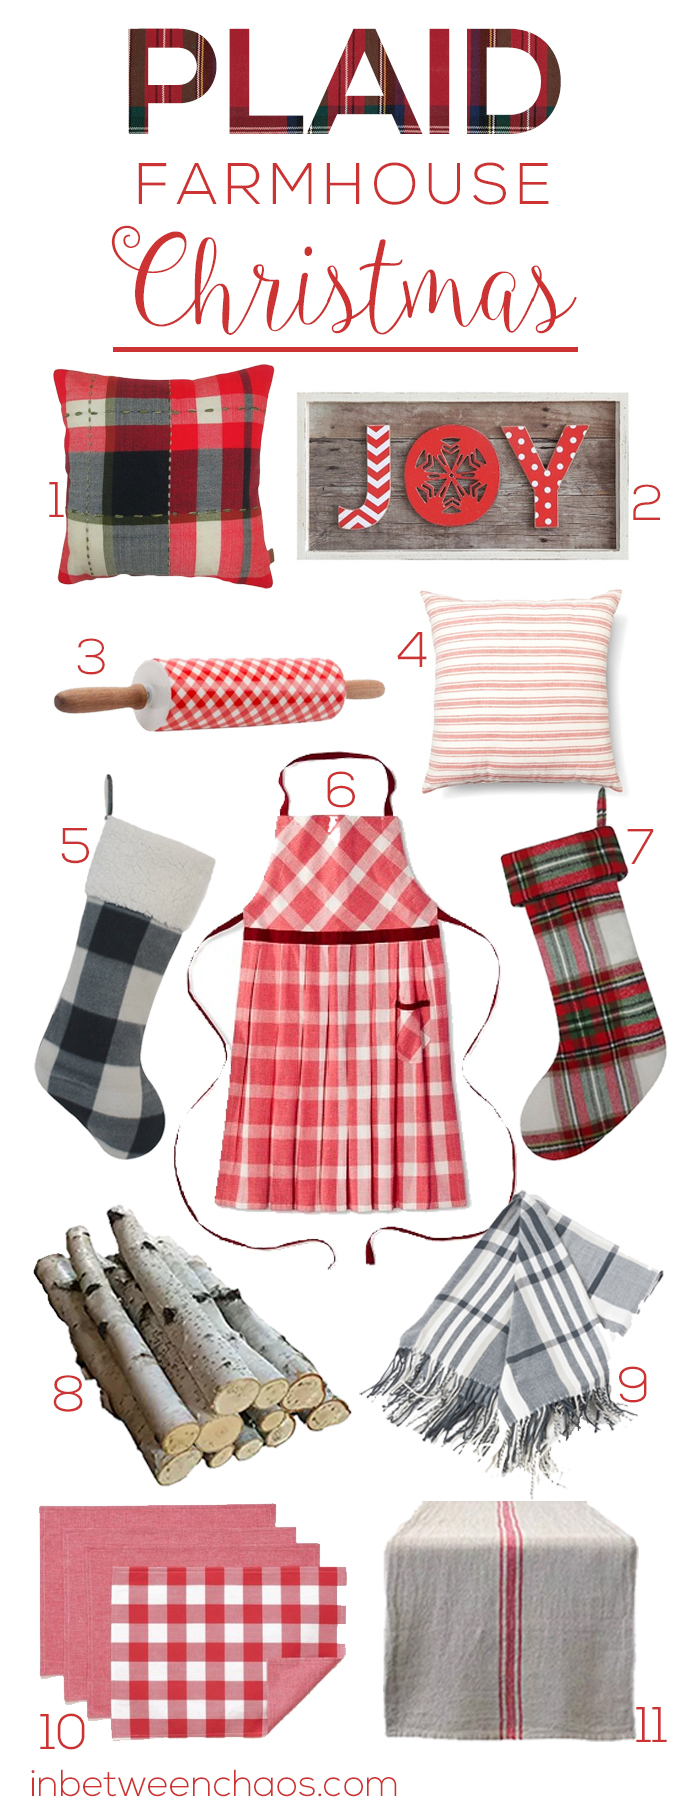 Deck the Halls in Plaid and Farmhouse Charm | inbetweenchaos.com